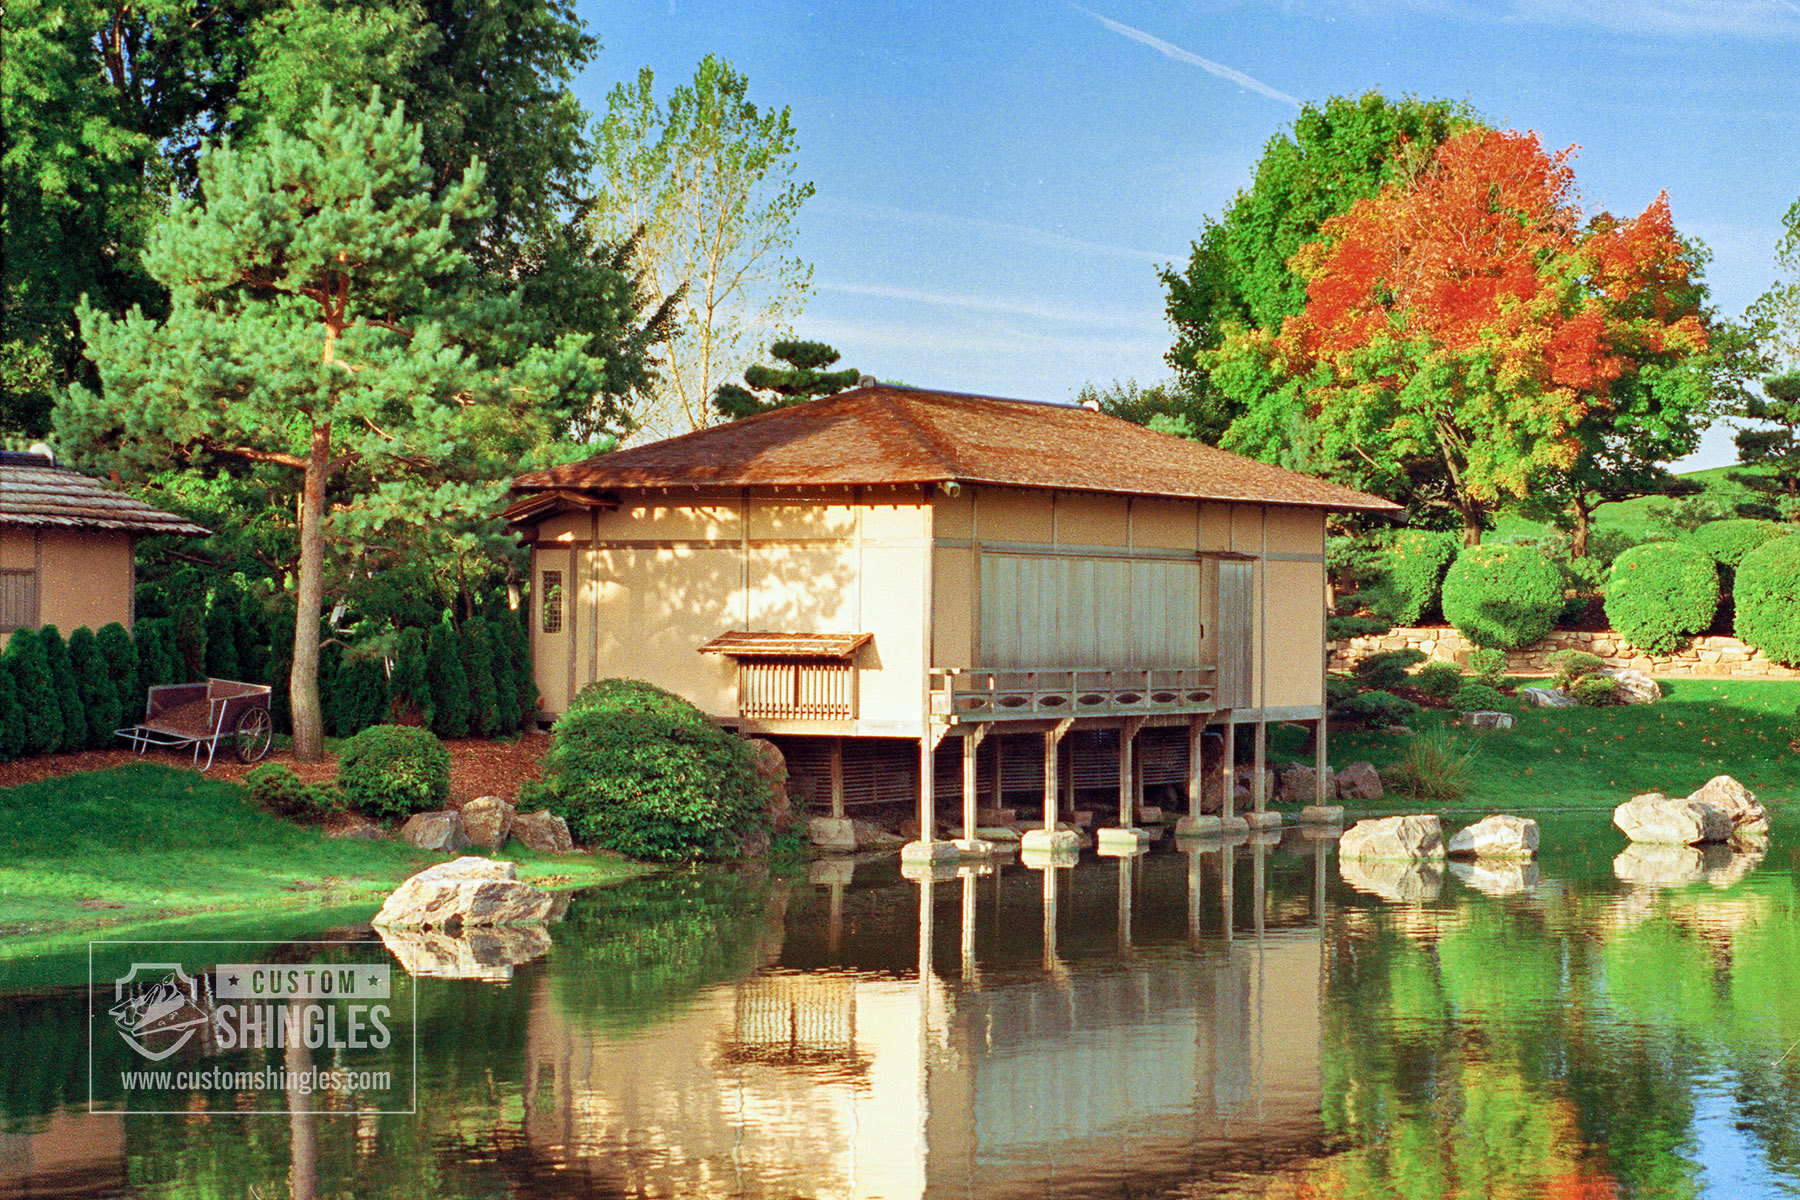 Chicago Botanical Gardens Japanese Tea House using Wafer Thin Shingles (2) copy.jpg